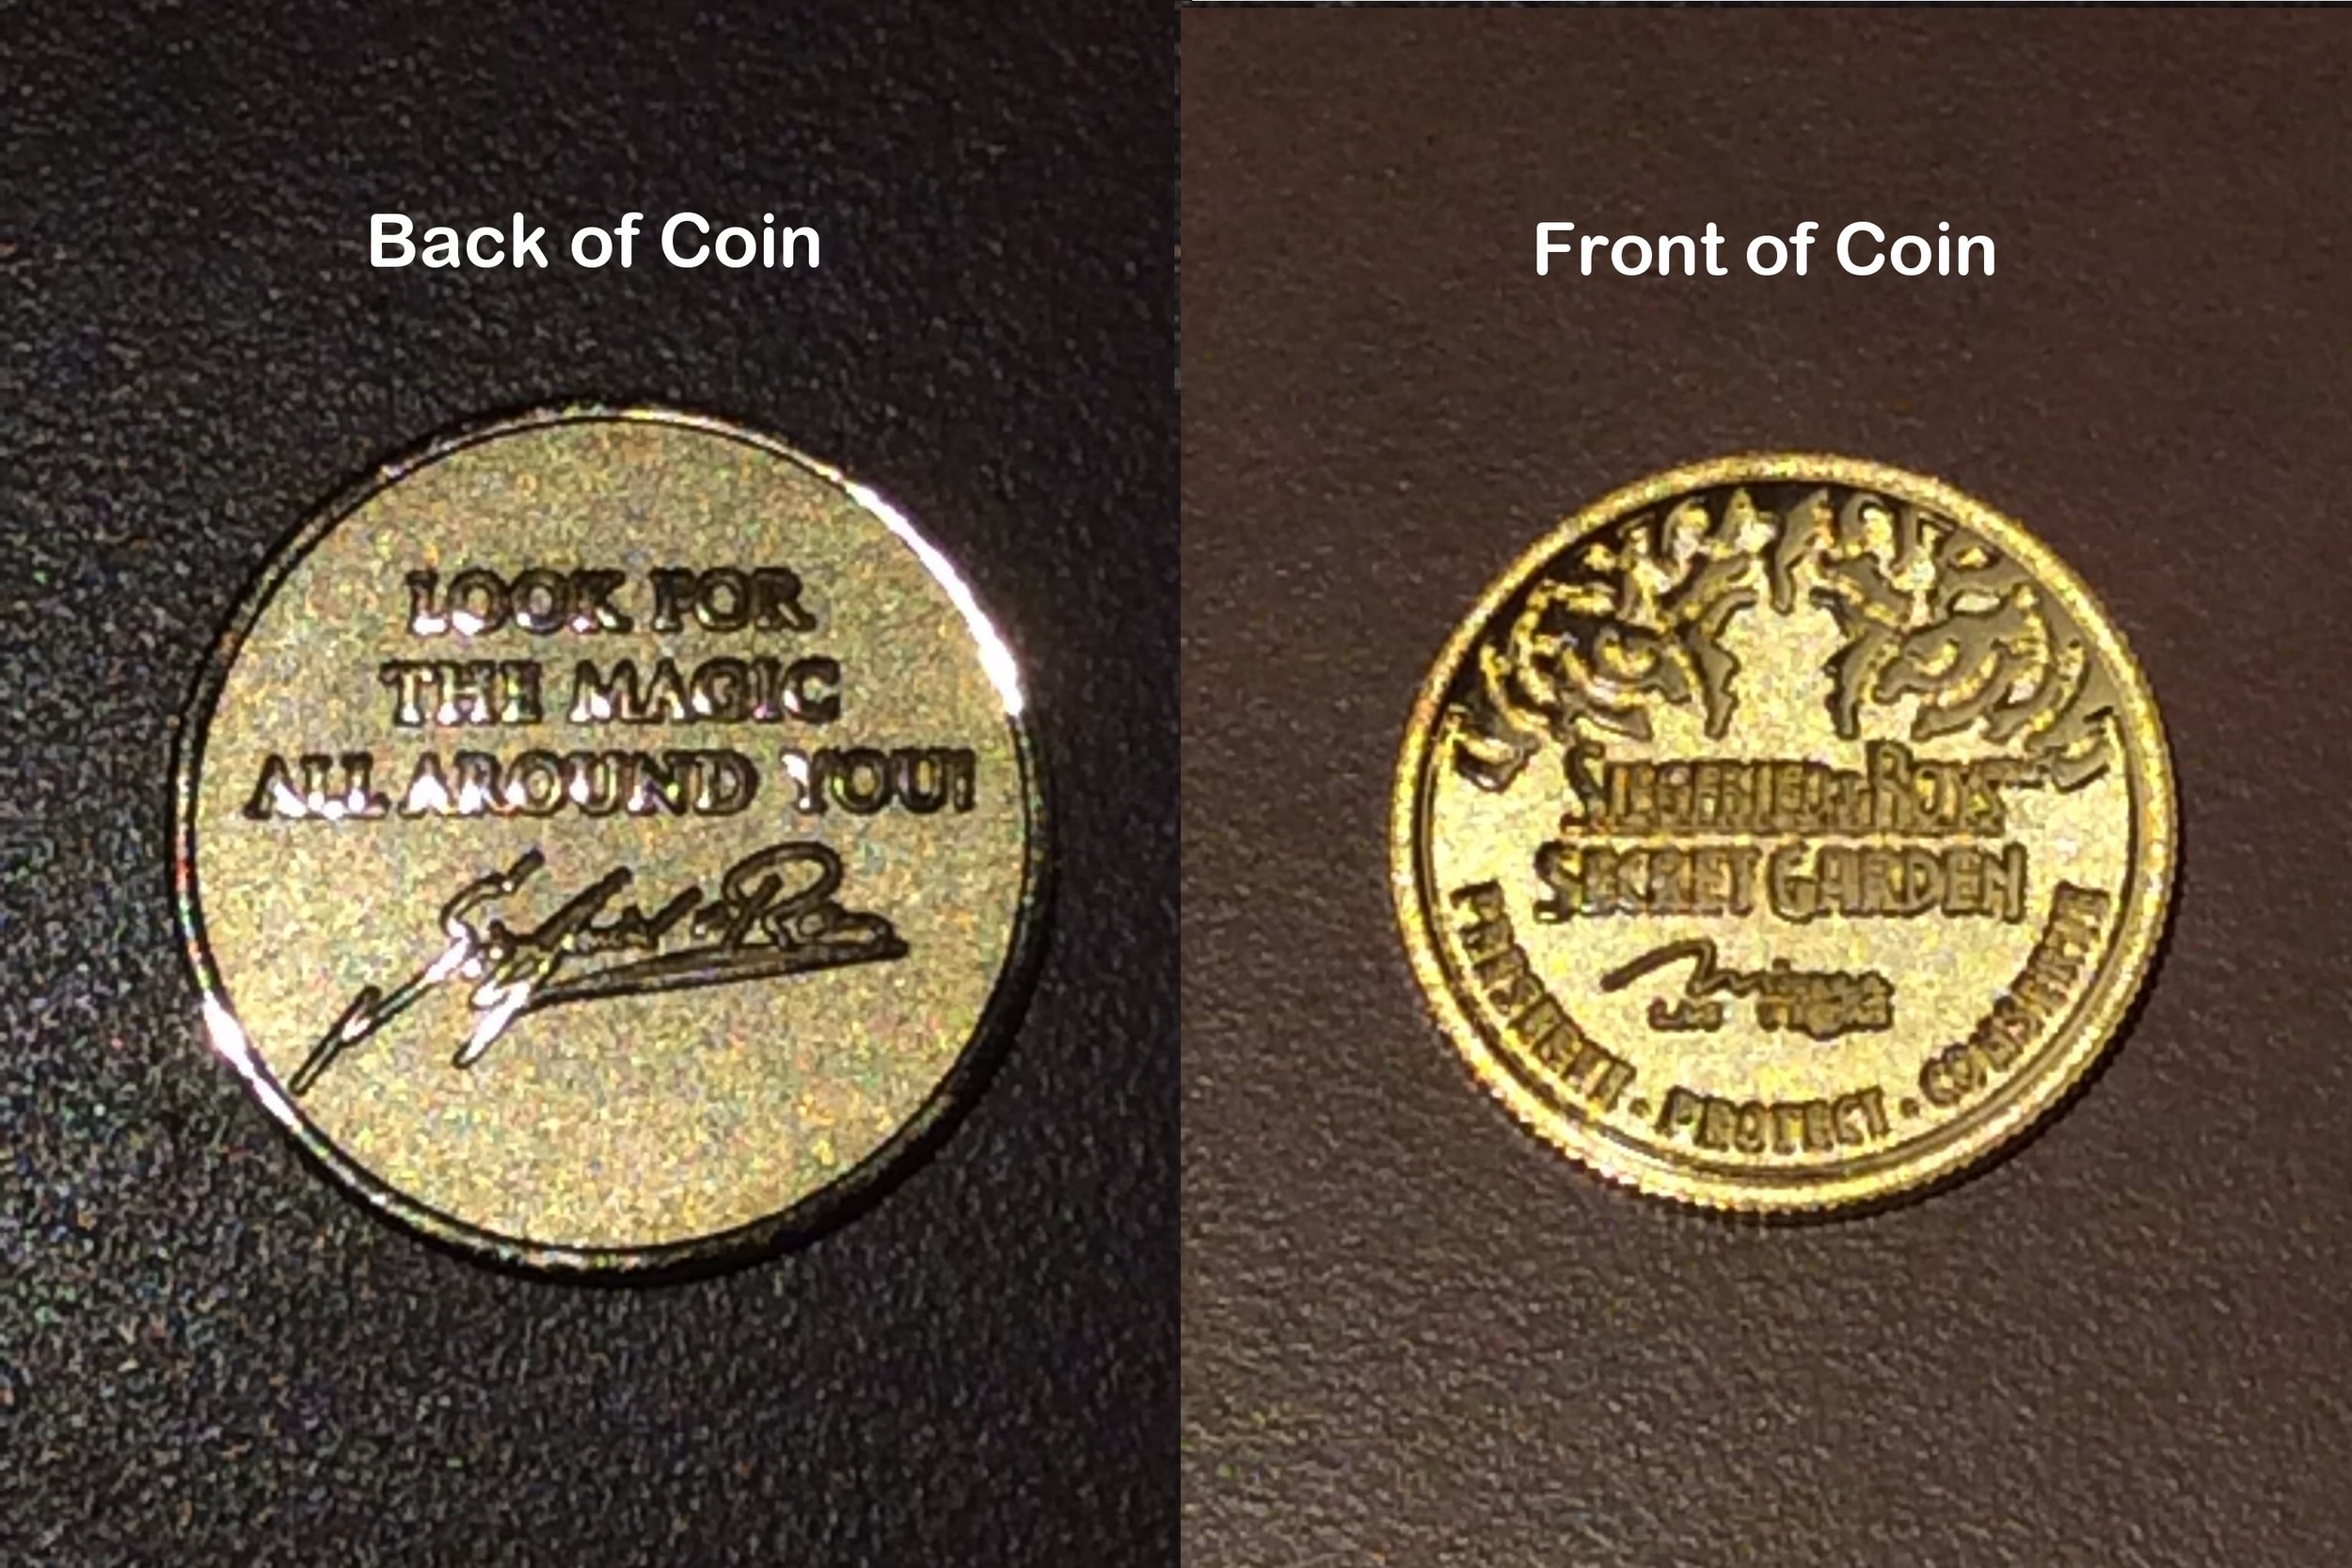 Coin given to Tessa by Siegfried